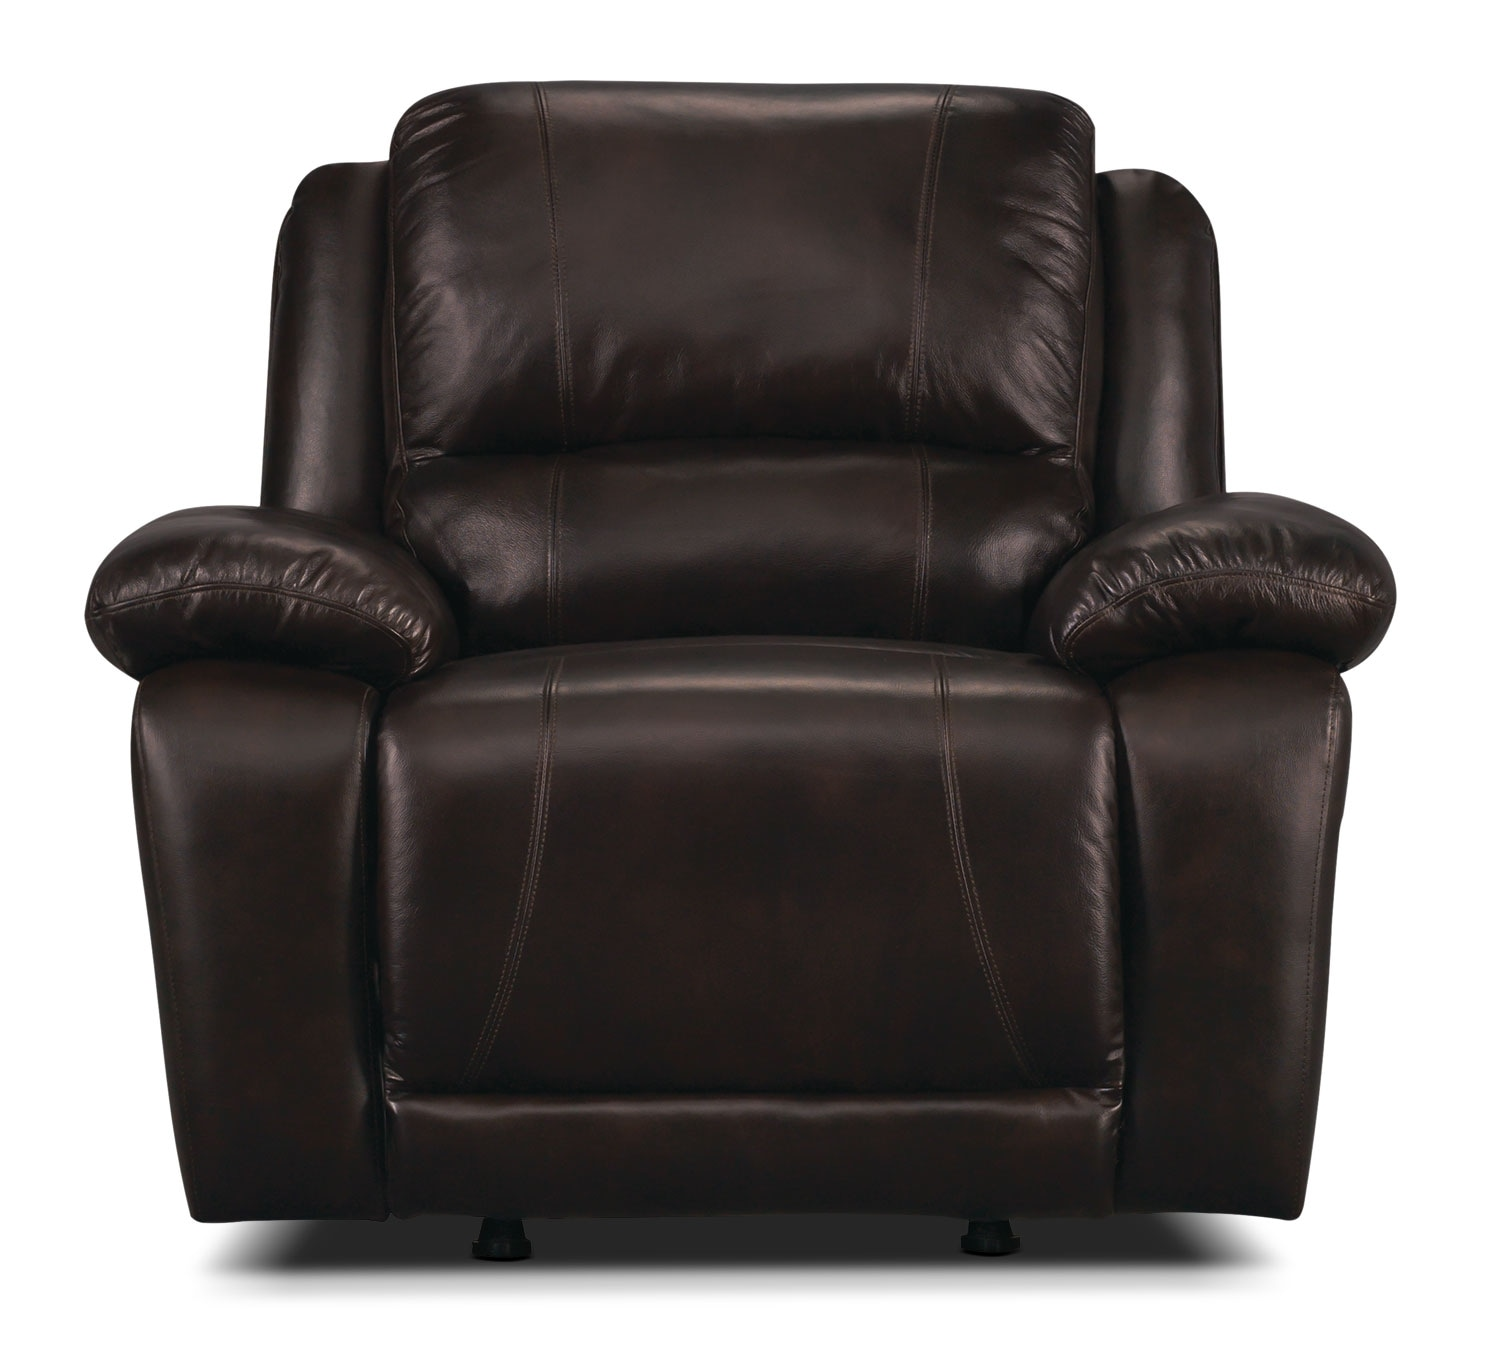 marco genuine leather power recliner chocolate the brick. Black Bedroom Furniture Sets. Home Design Ideas